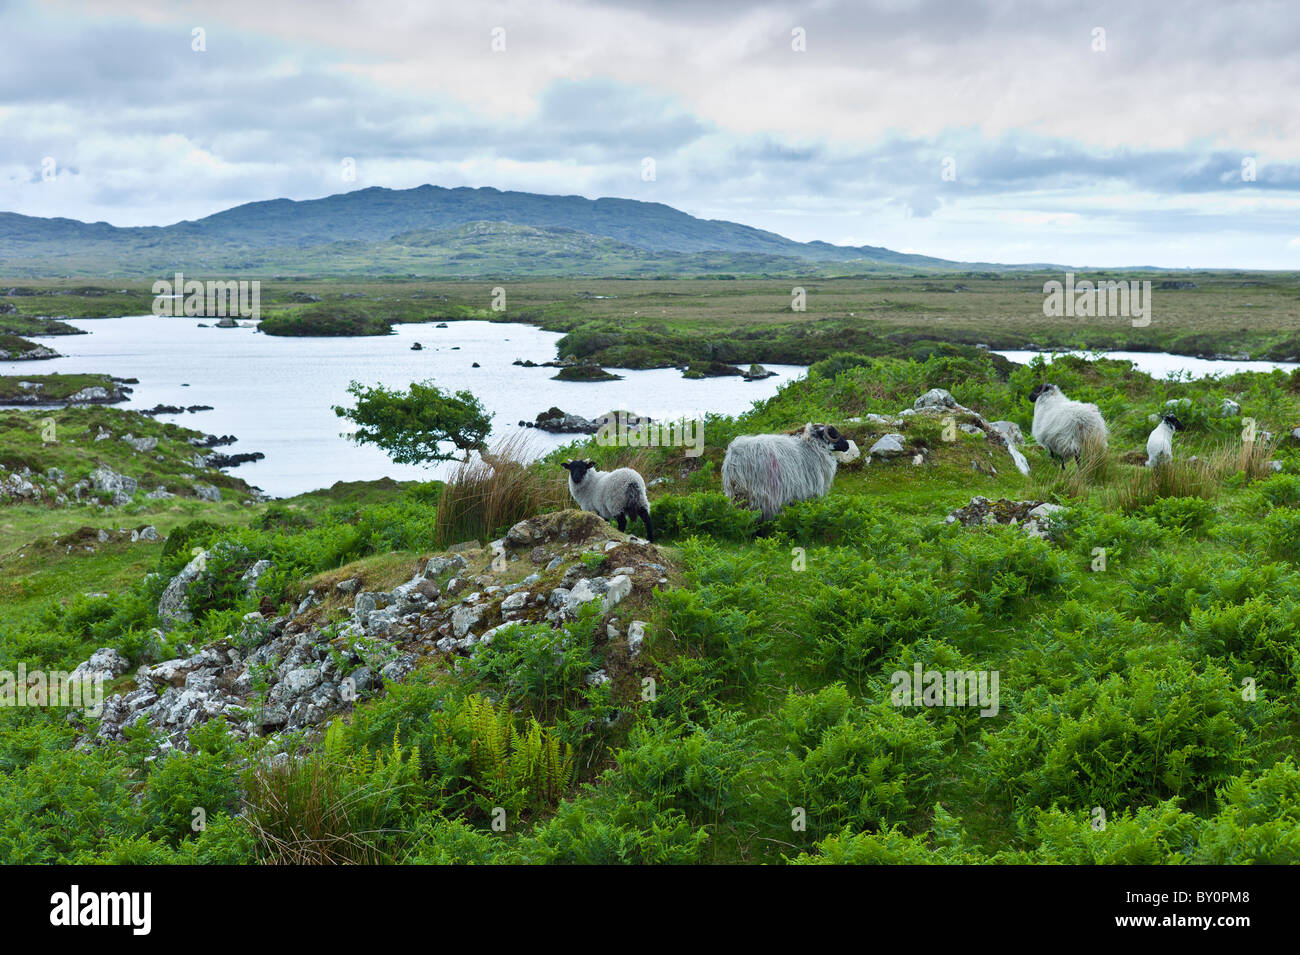 Mountain sheep and windblown tree on the Old Bog Road, near Roundstone, Connemara, County Galway - Stock Image